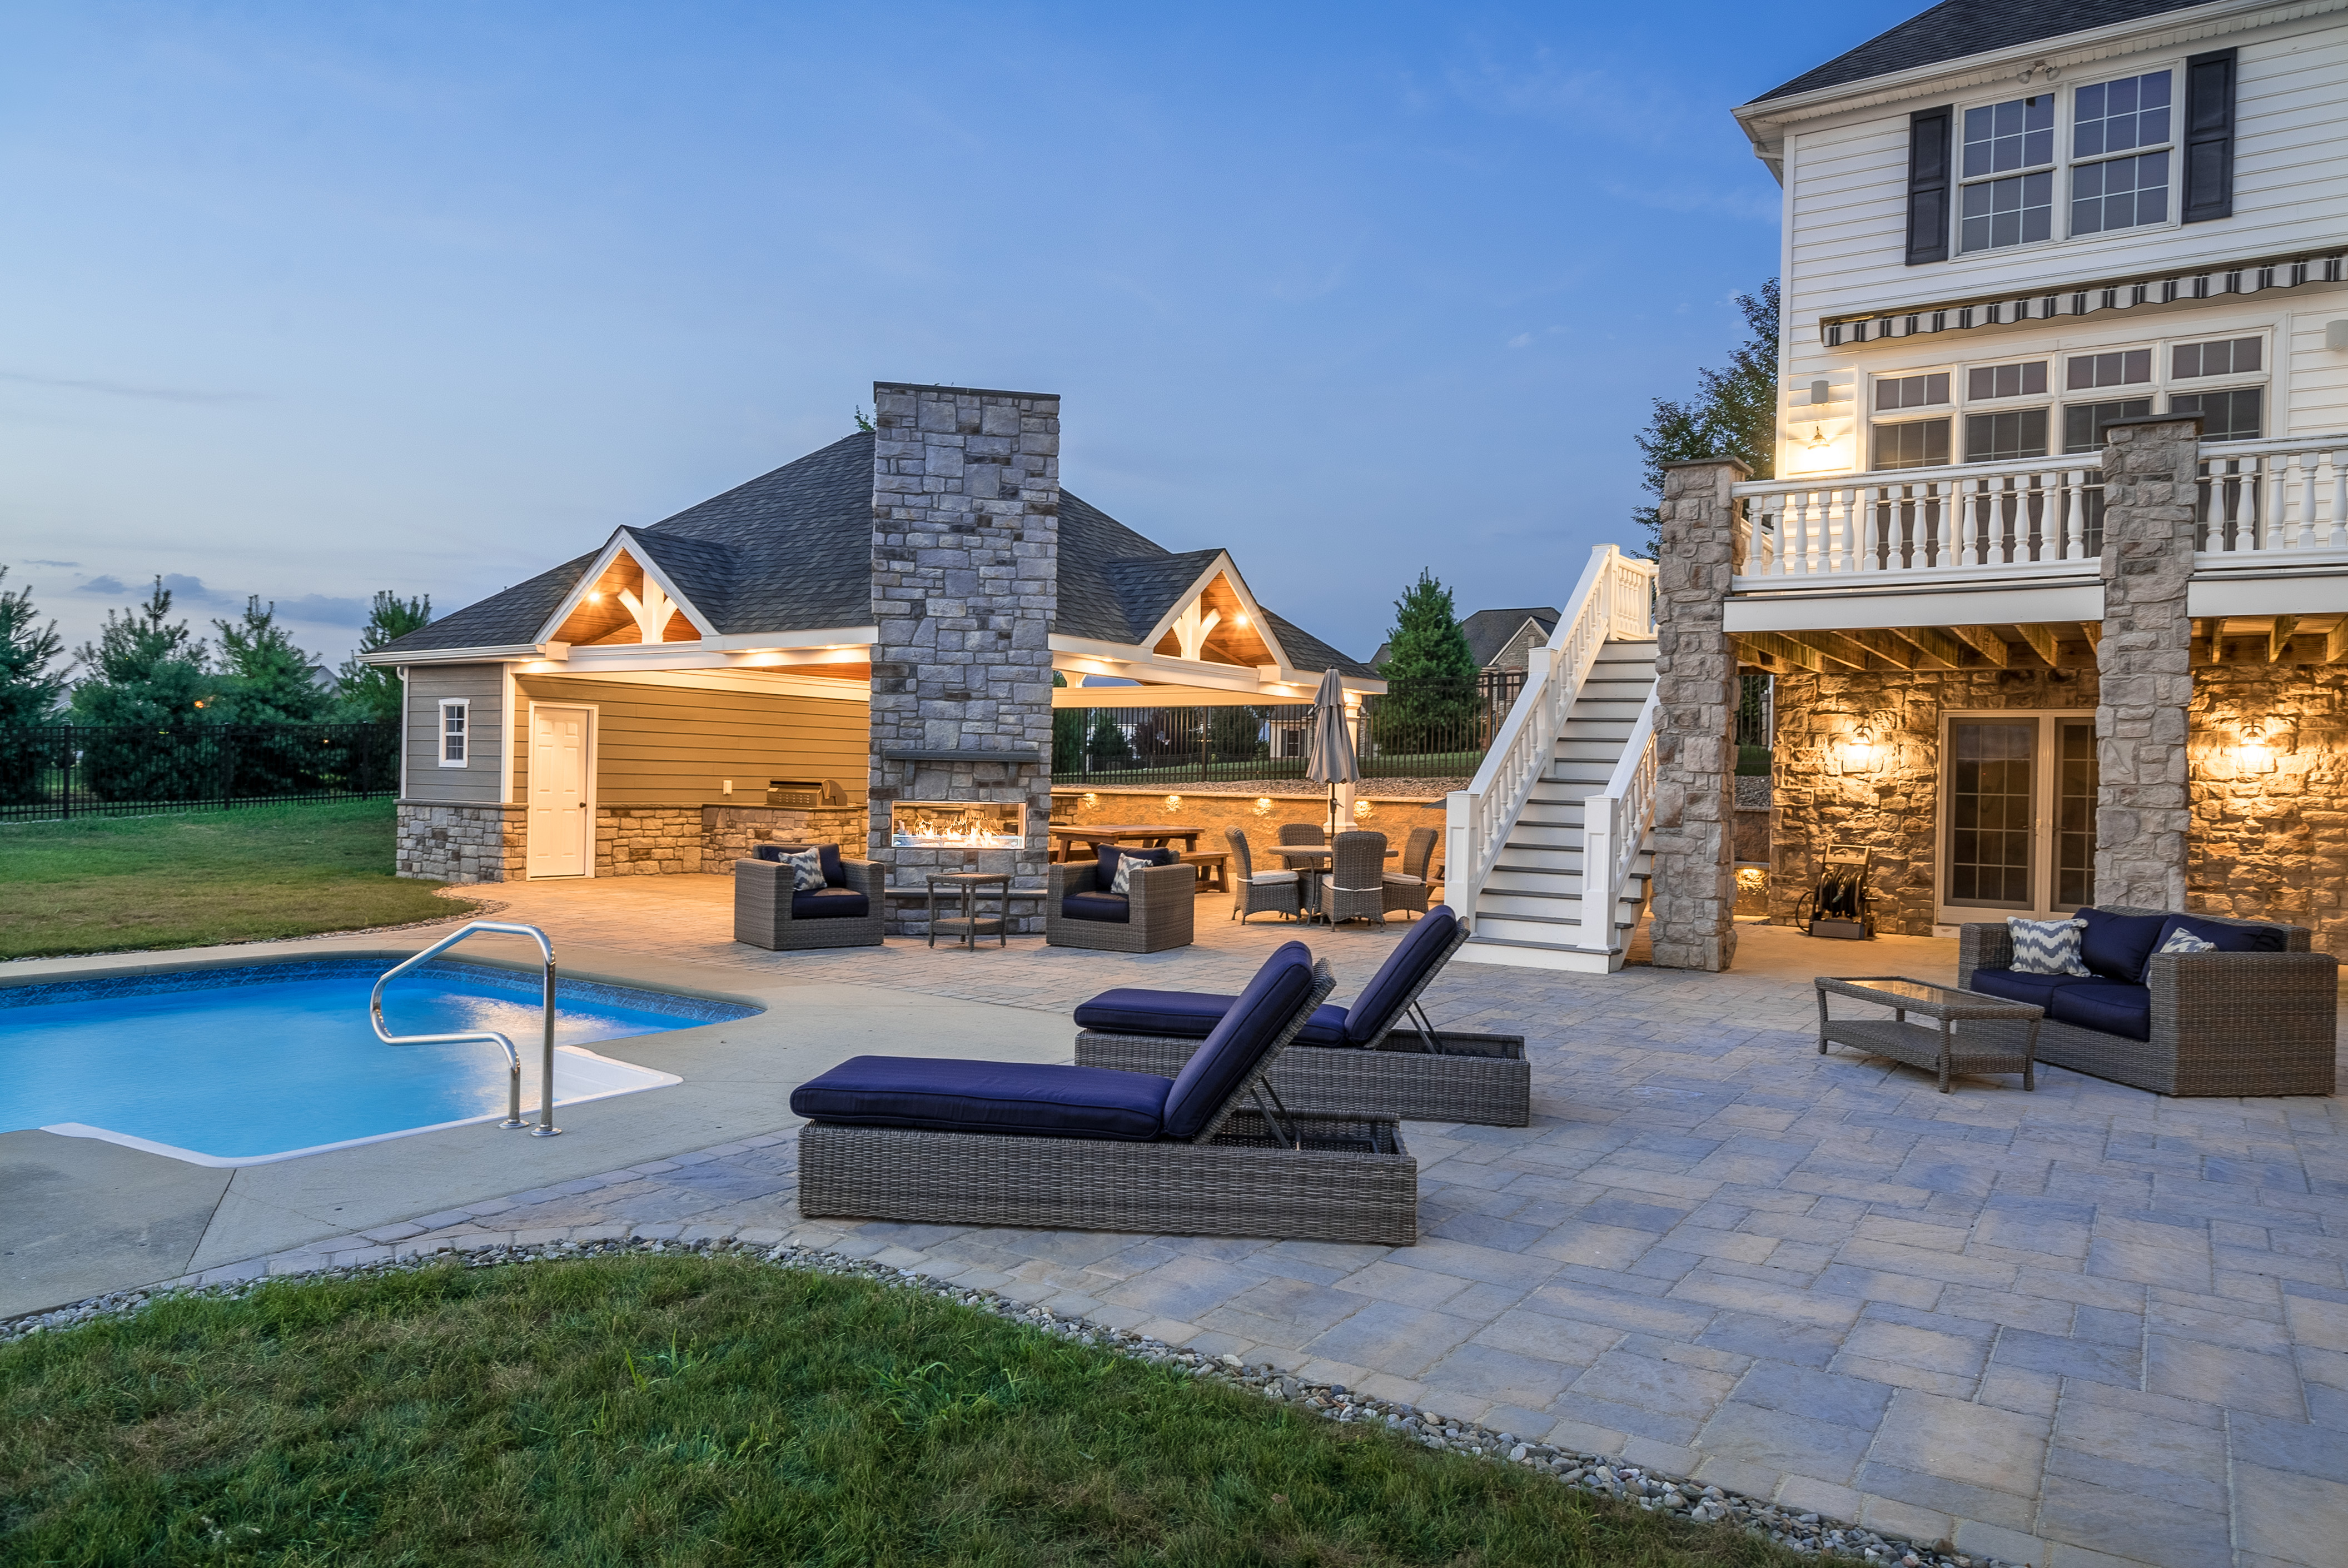 Fireplace by pool